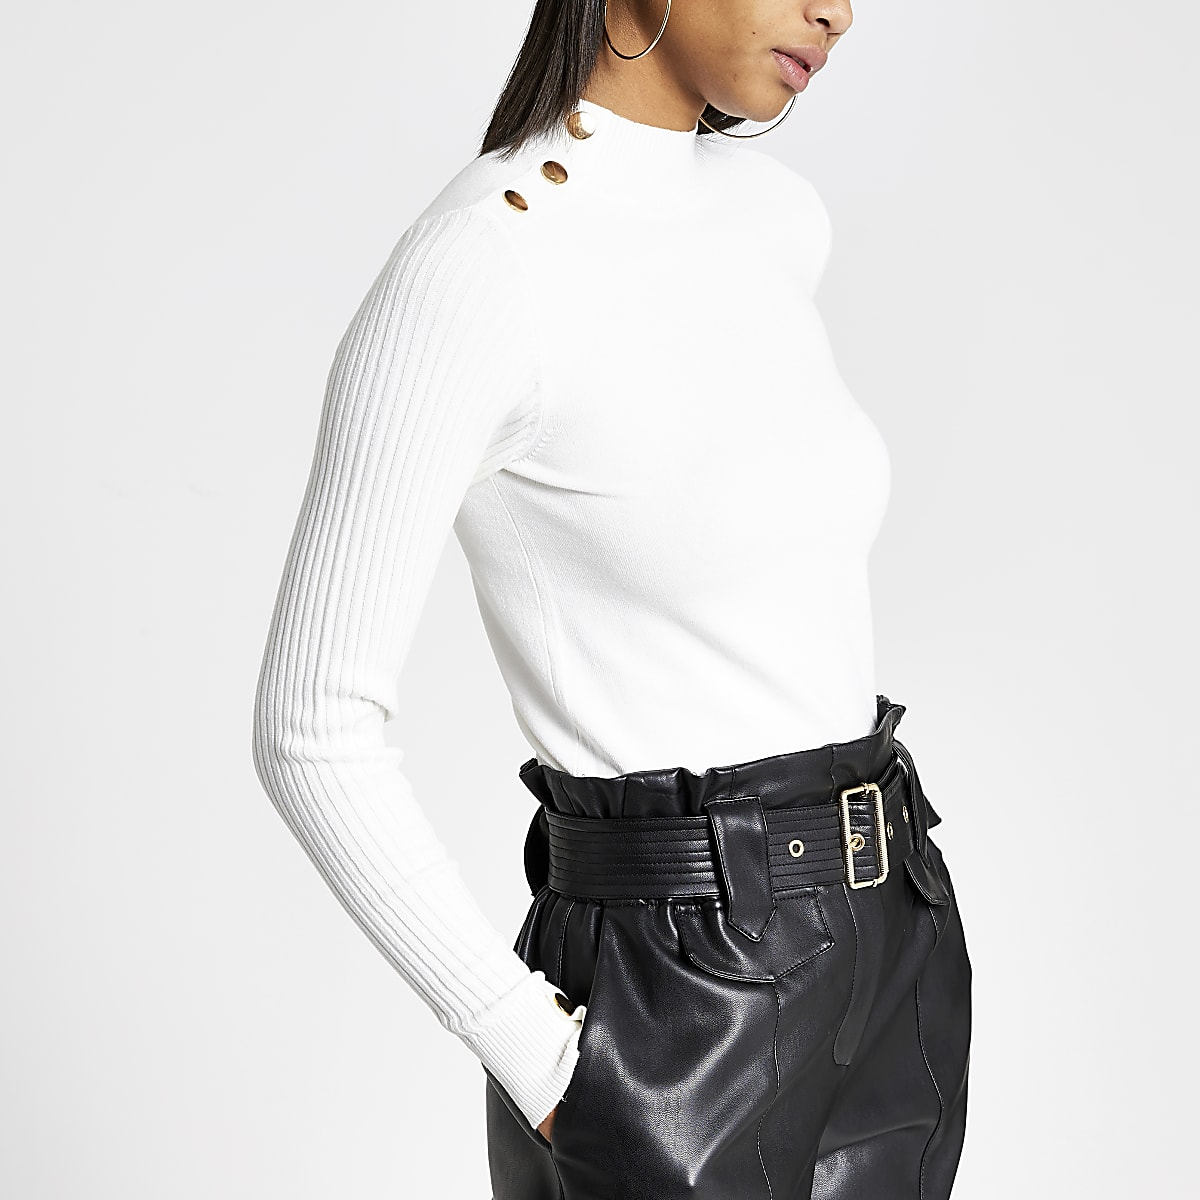 Cream fitted high neck knitted top